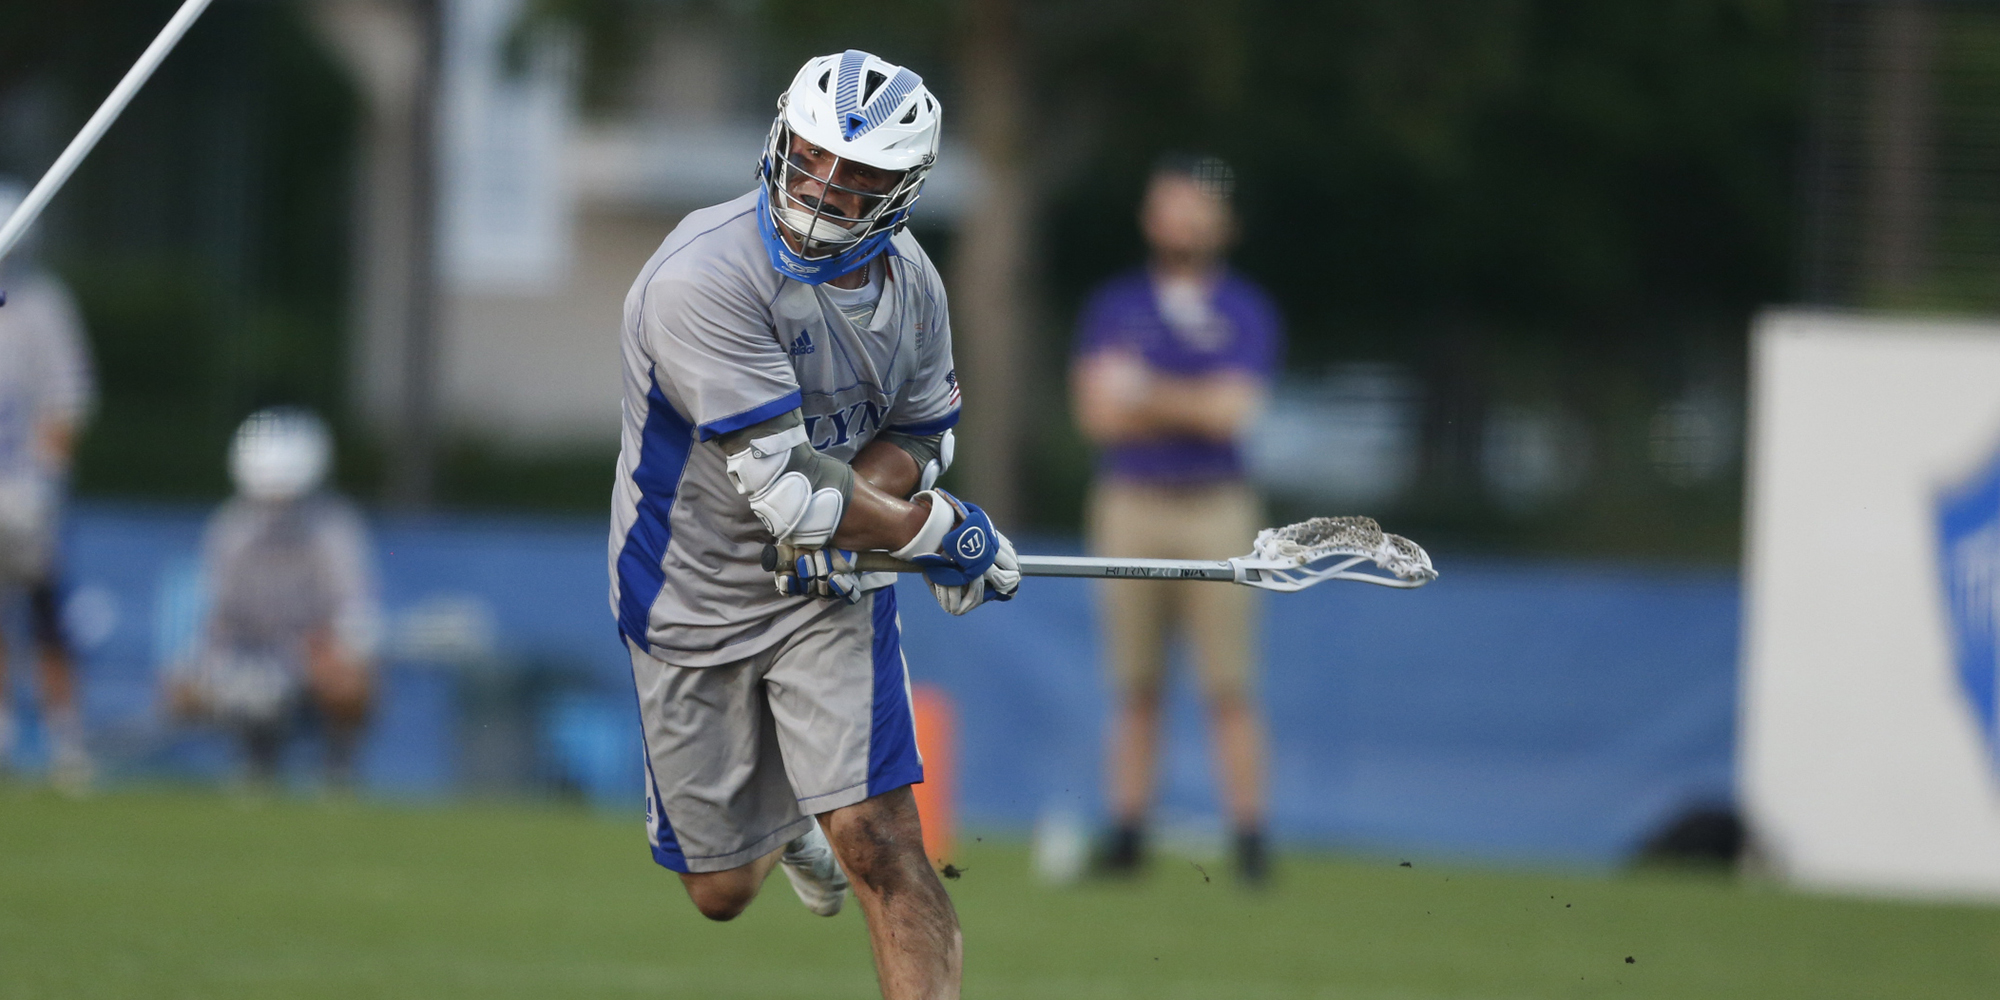 Down Goes Goliath! McCabe's Game-Winner Seals Men's Lacrosse's First-Ever Victory over No. 16 Tampa